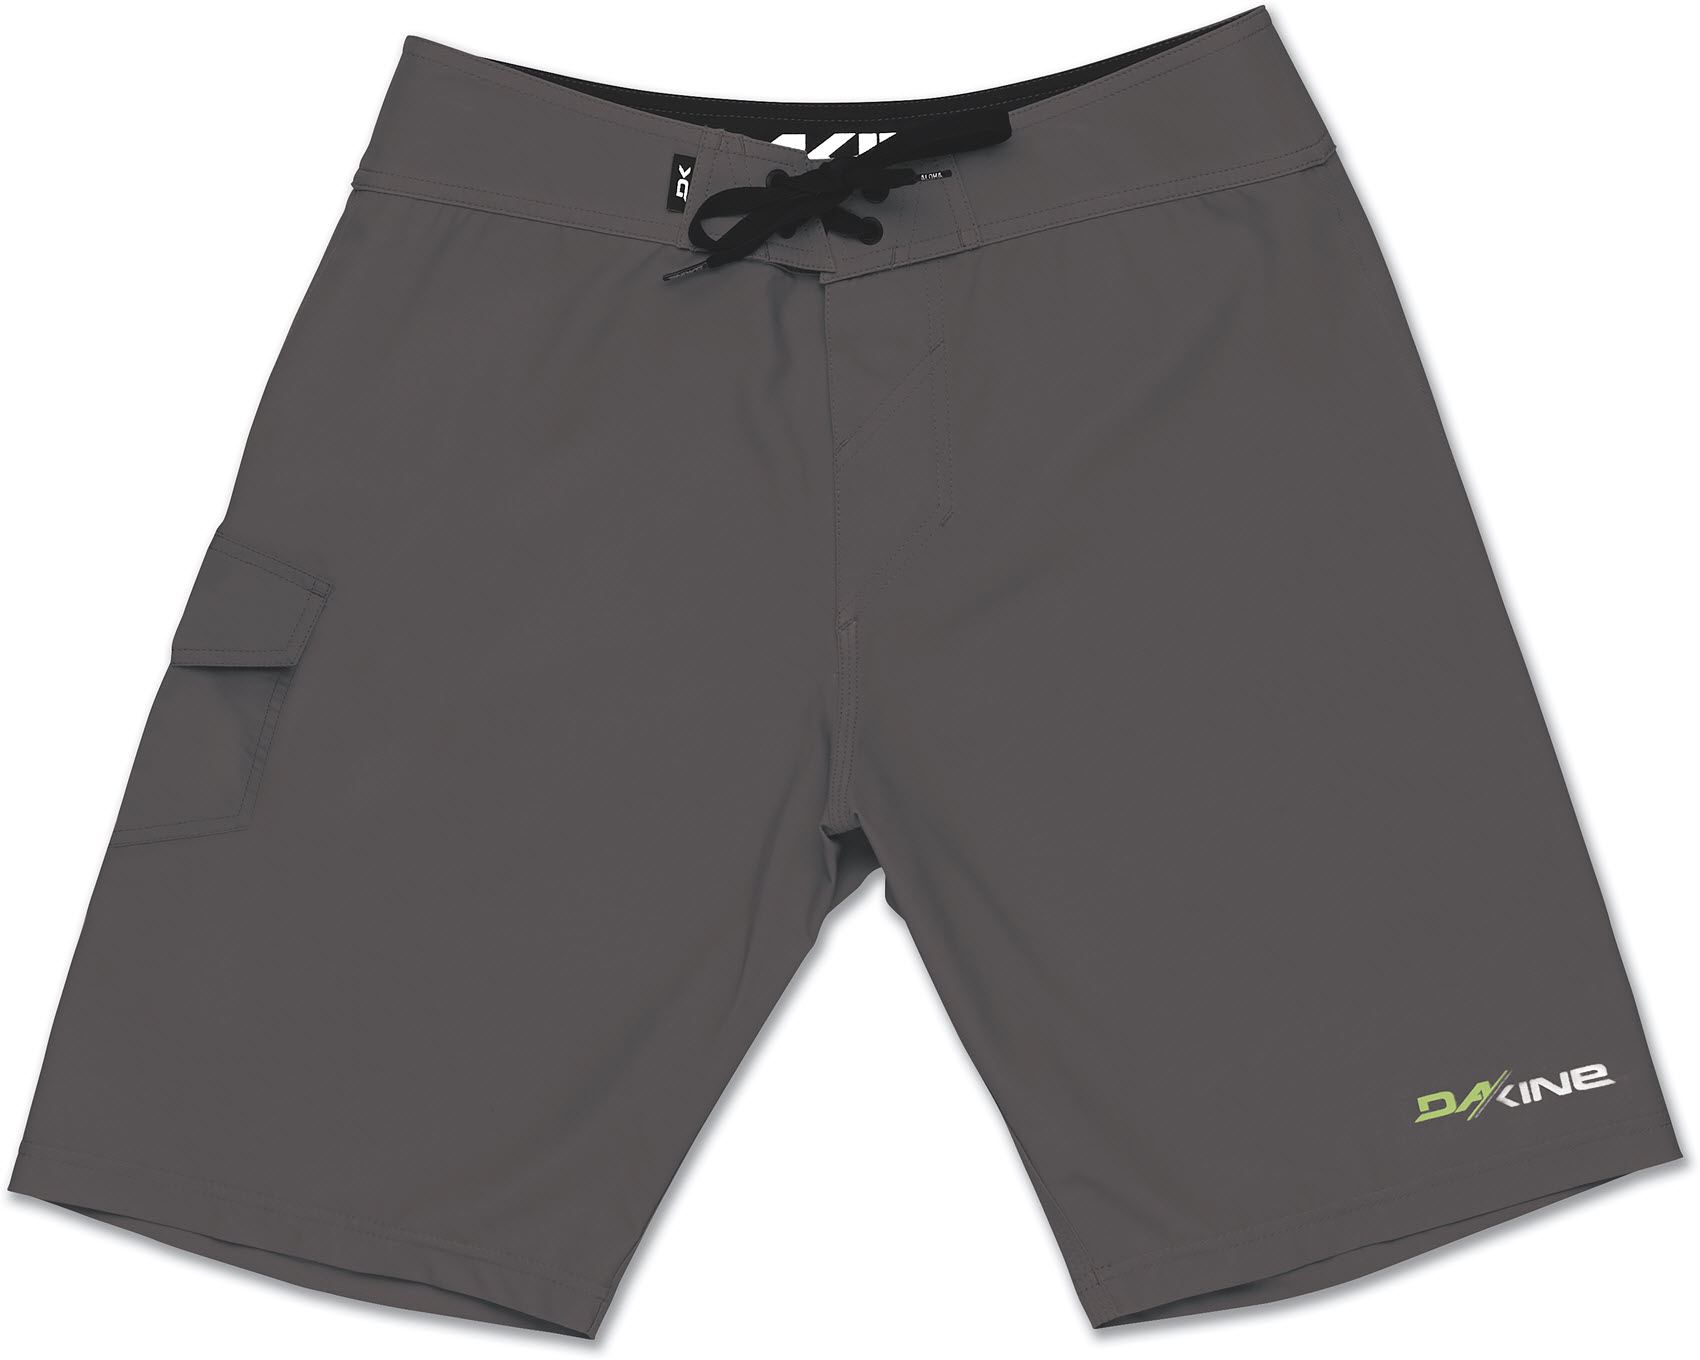 dakine prime board short 2016 in charcoal 32